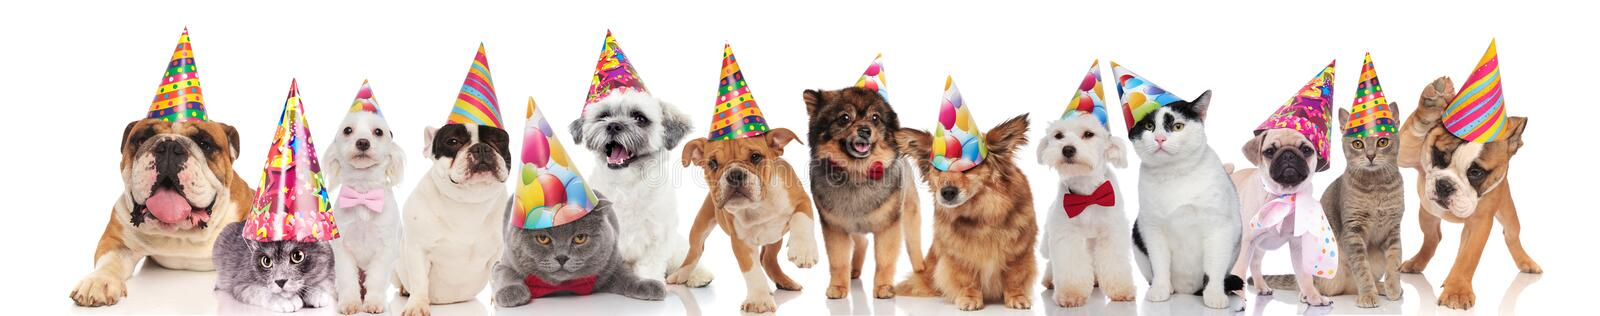 Cute team of pets with colorful hats ready for party stock photos